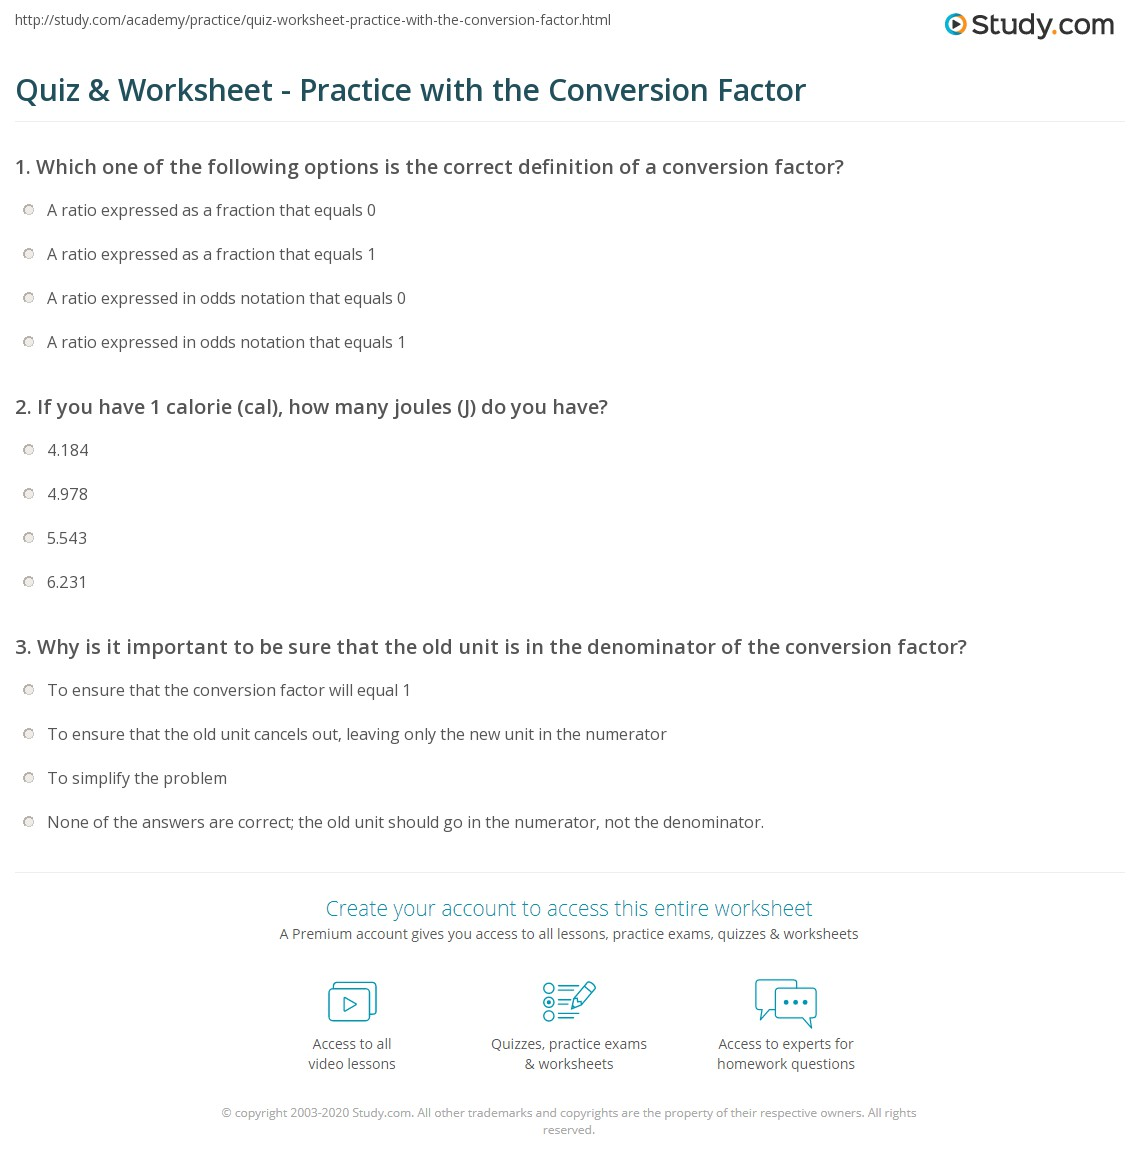 worksheet Conversion Practice Problems quiz worksheet practice with the conversion factor study com print in chemistry definition formula problems worksheet